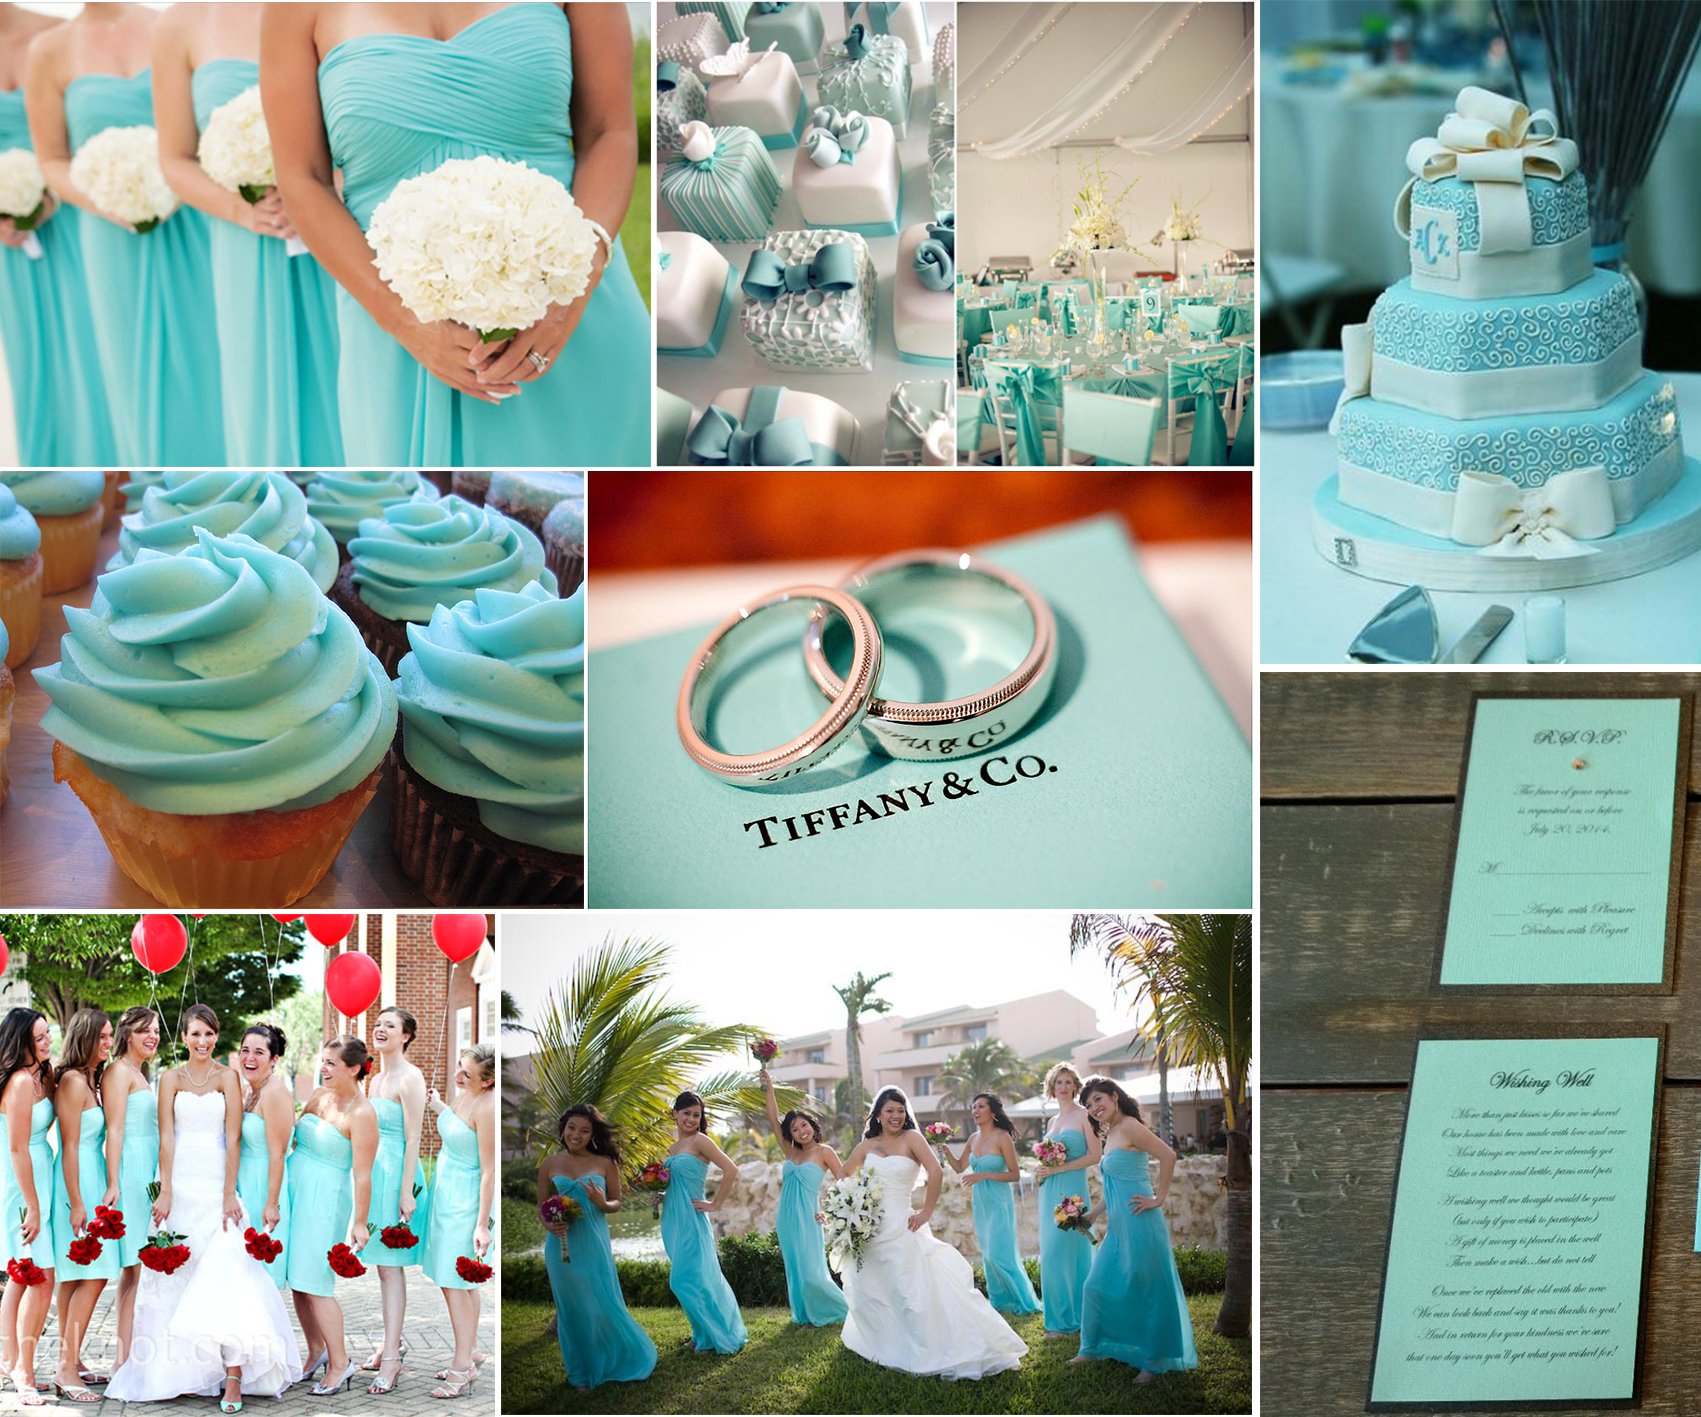 The Tiffany blue theme wedding ideas  lianggeyuan123